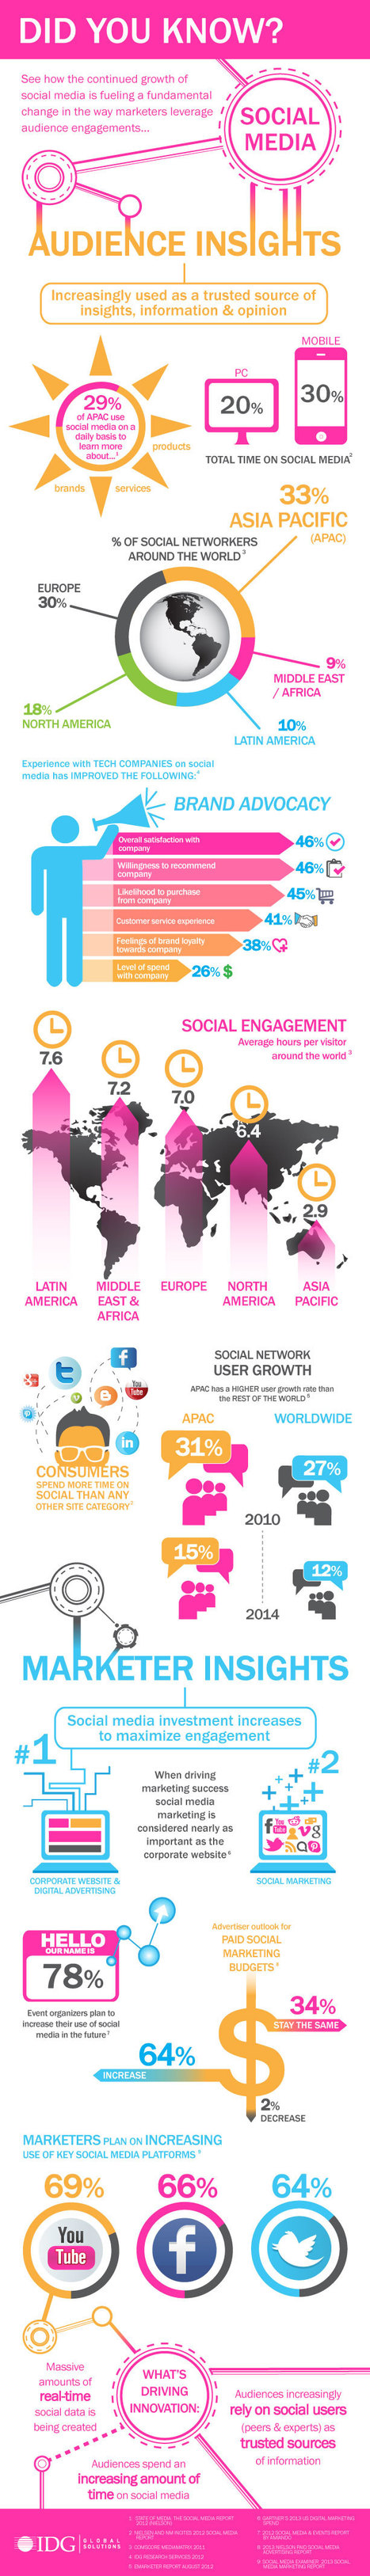 Marketer and Audience Insights on Social Media Worldwide #infographic | MarketingHits | Scoop.it